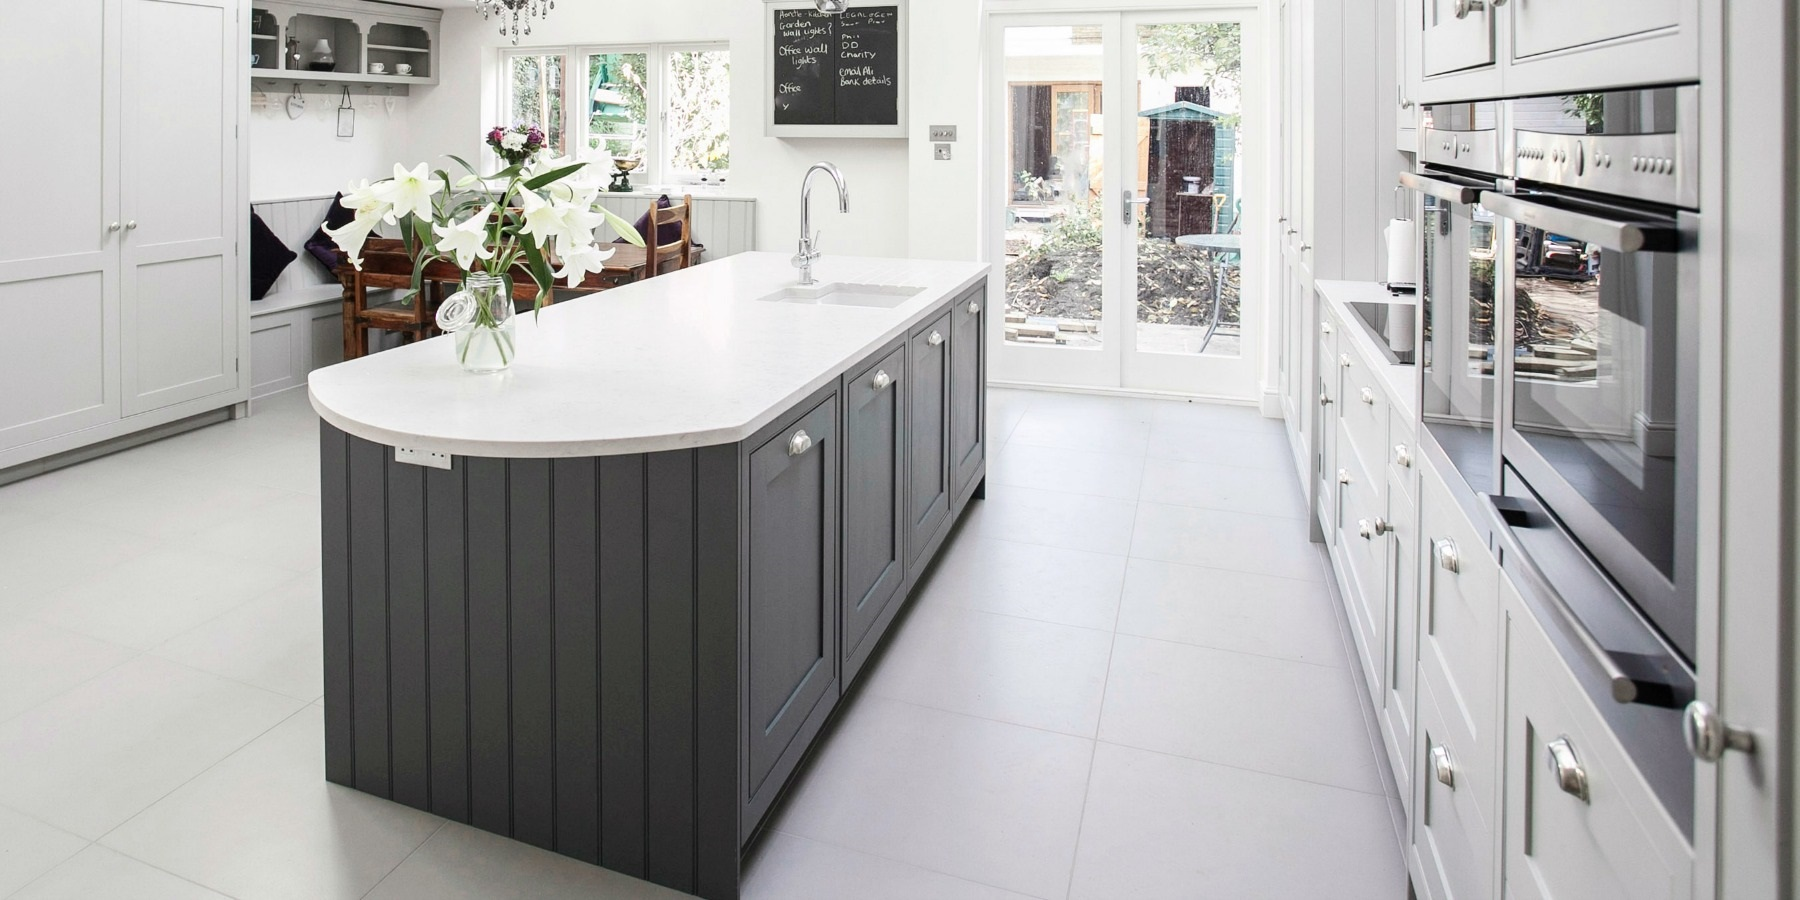 Luxury Bespoke Shaker Kitchen - Burlanes grey handmade Wellsdown kitchen with central island and shaker style panelling.